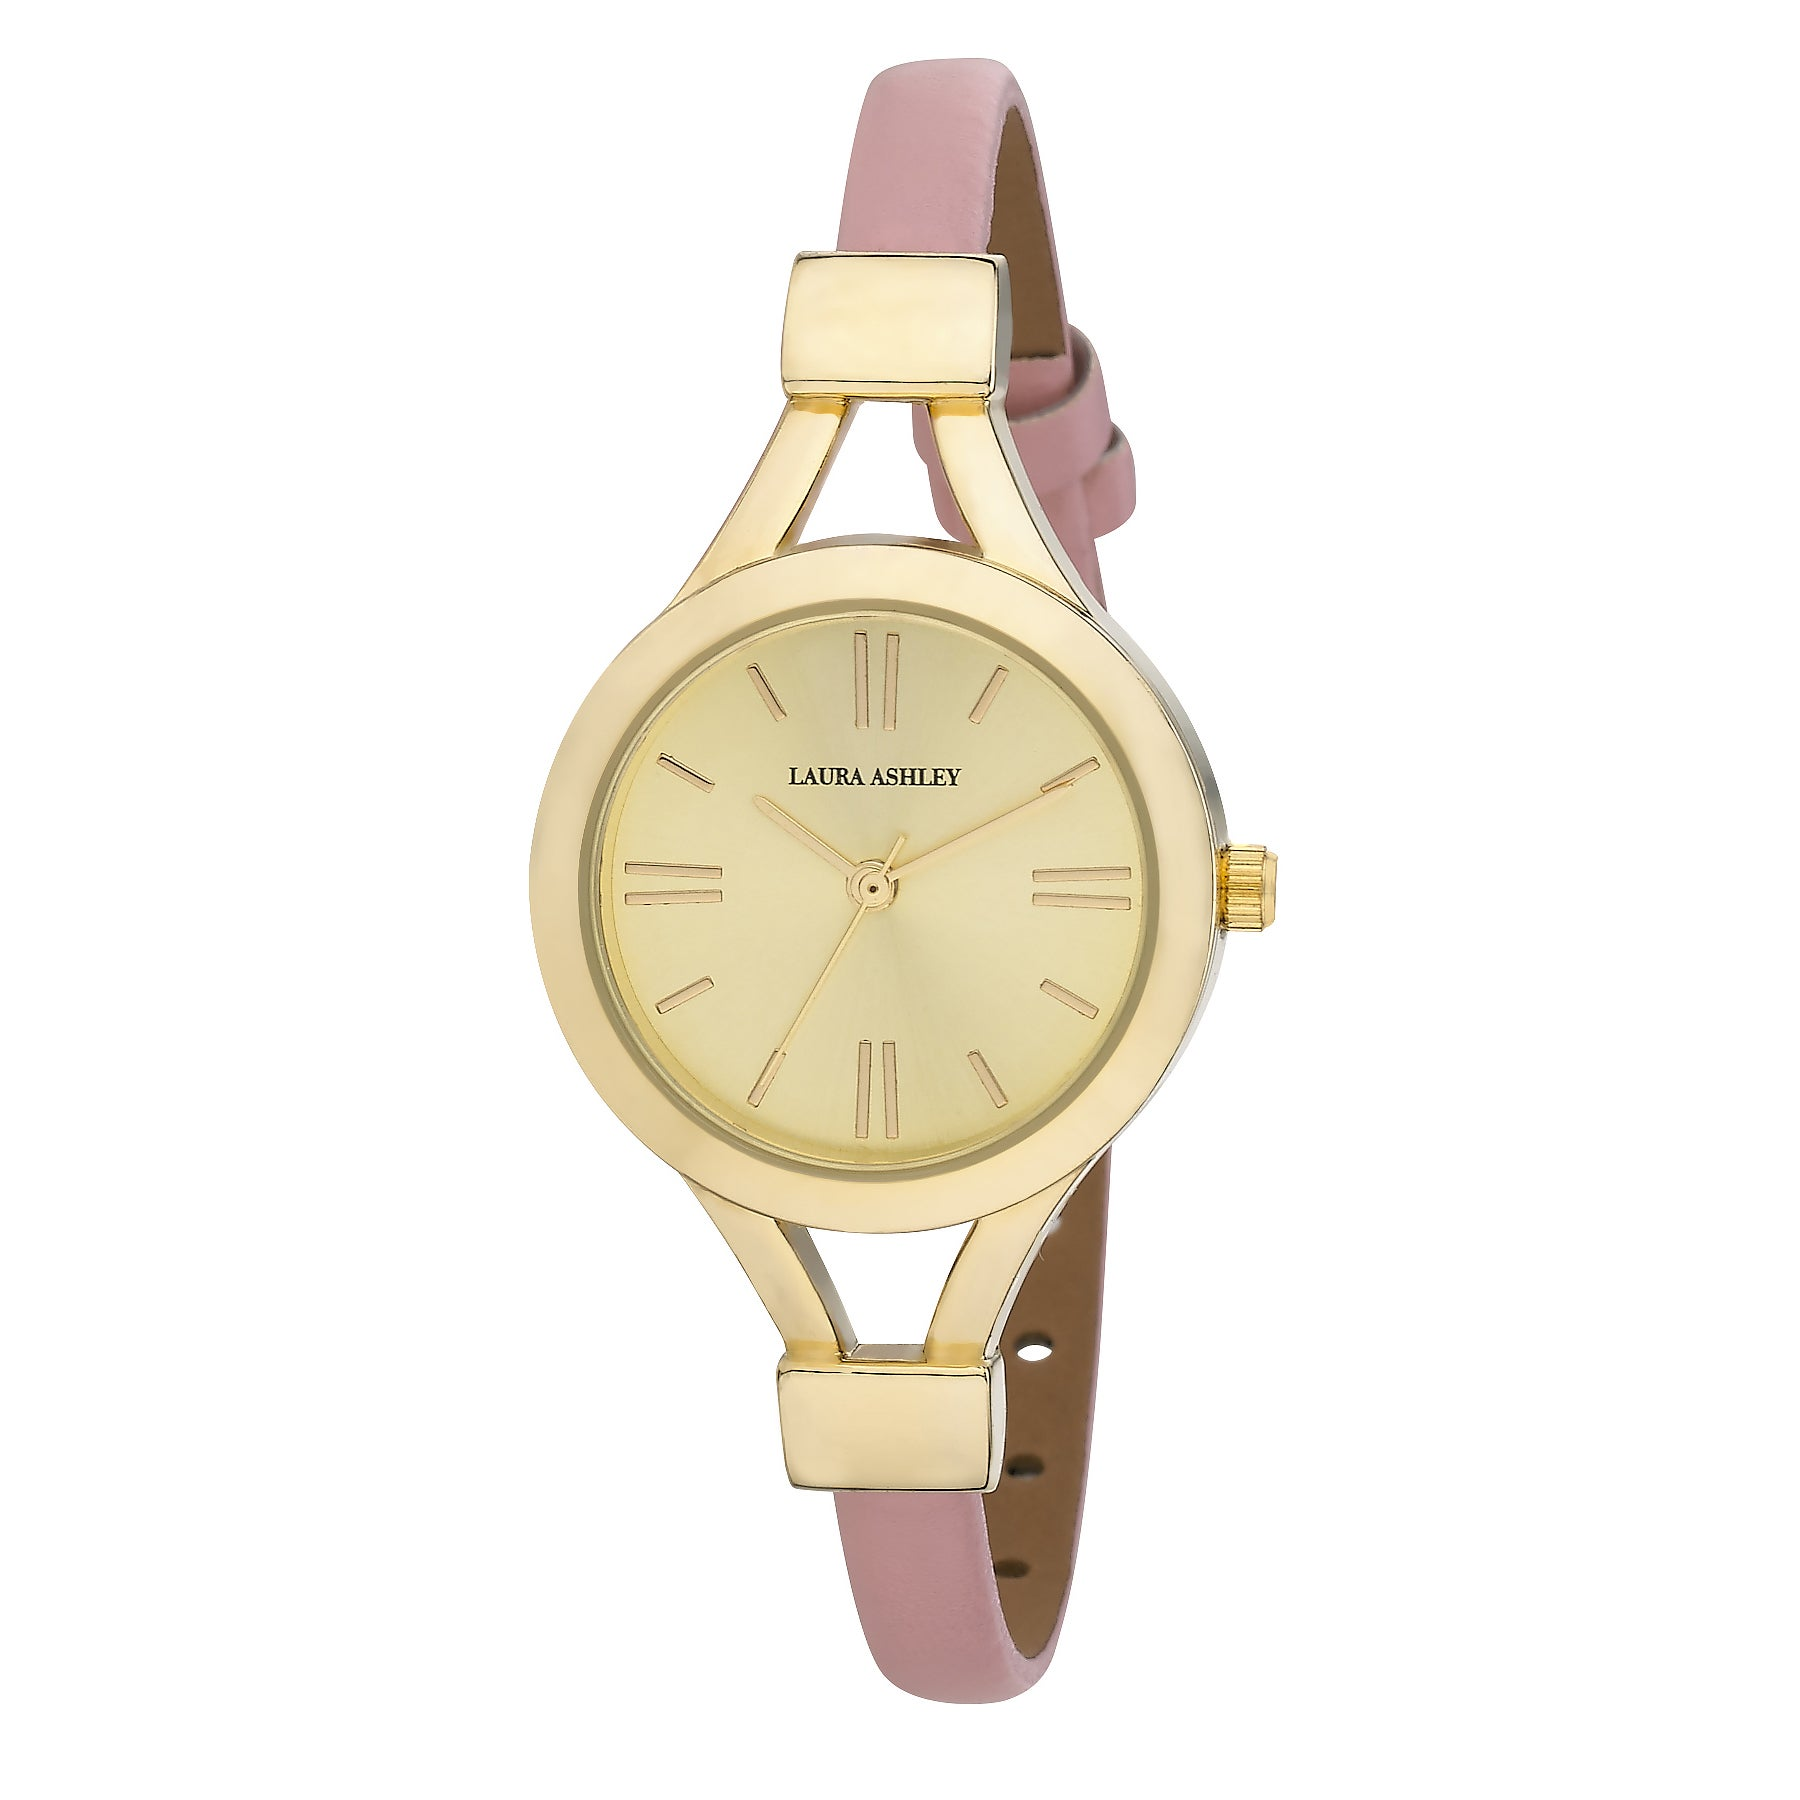 Laura Ashley Women's Thin Watch (Pink/Gold), Size One Siz...